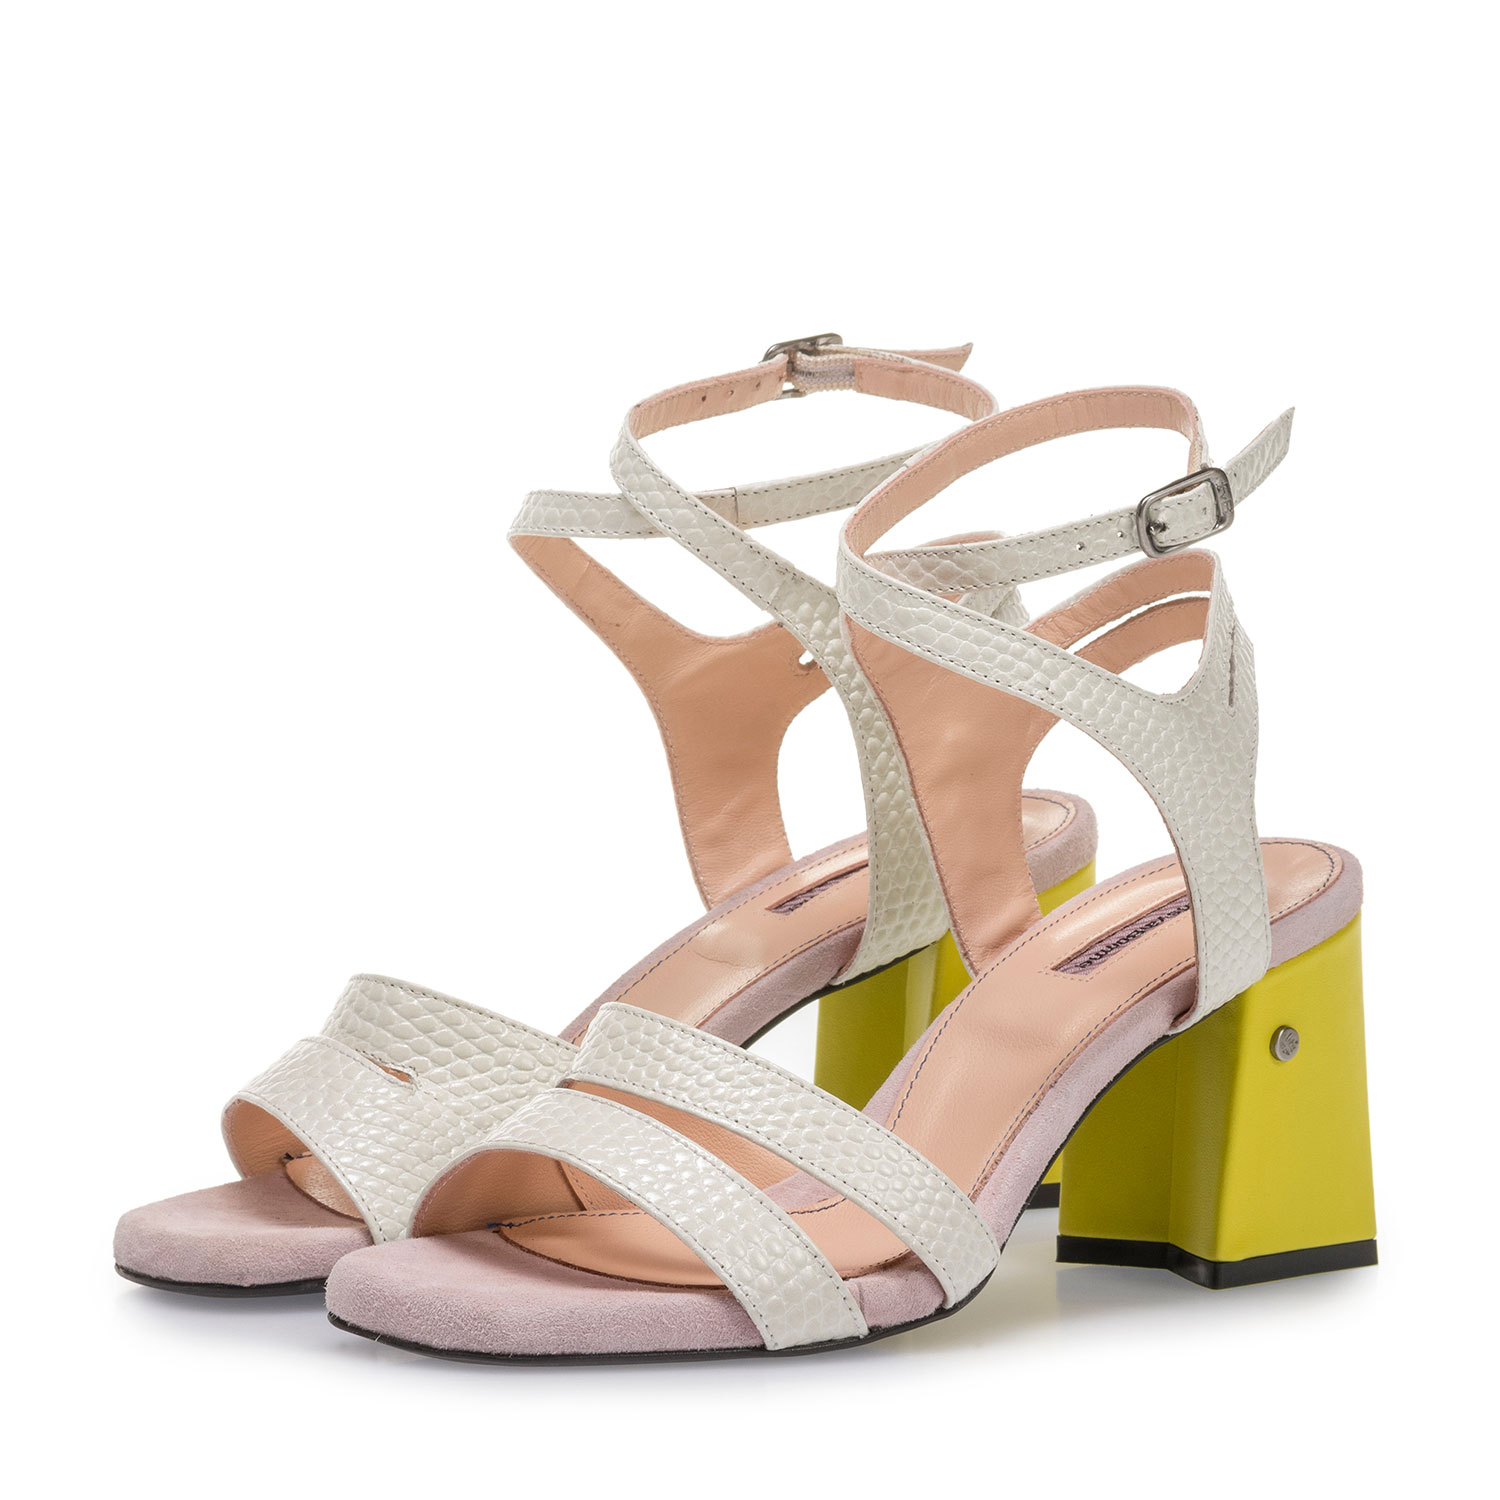 85943/04 - Off-white high-heeled sandals with pink and yellow details